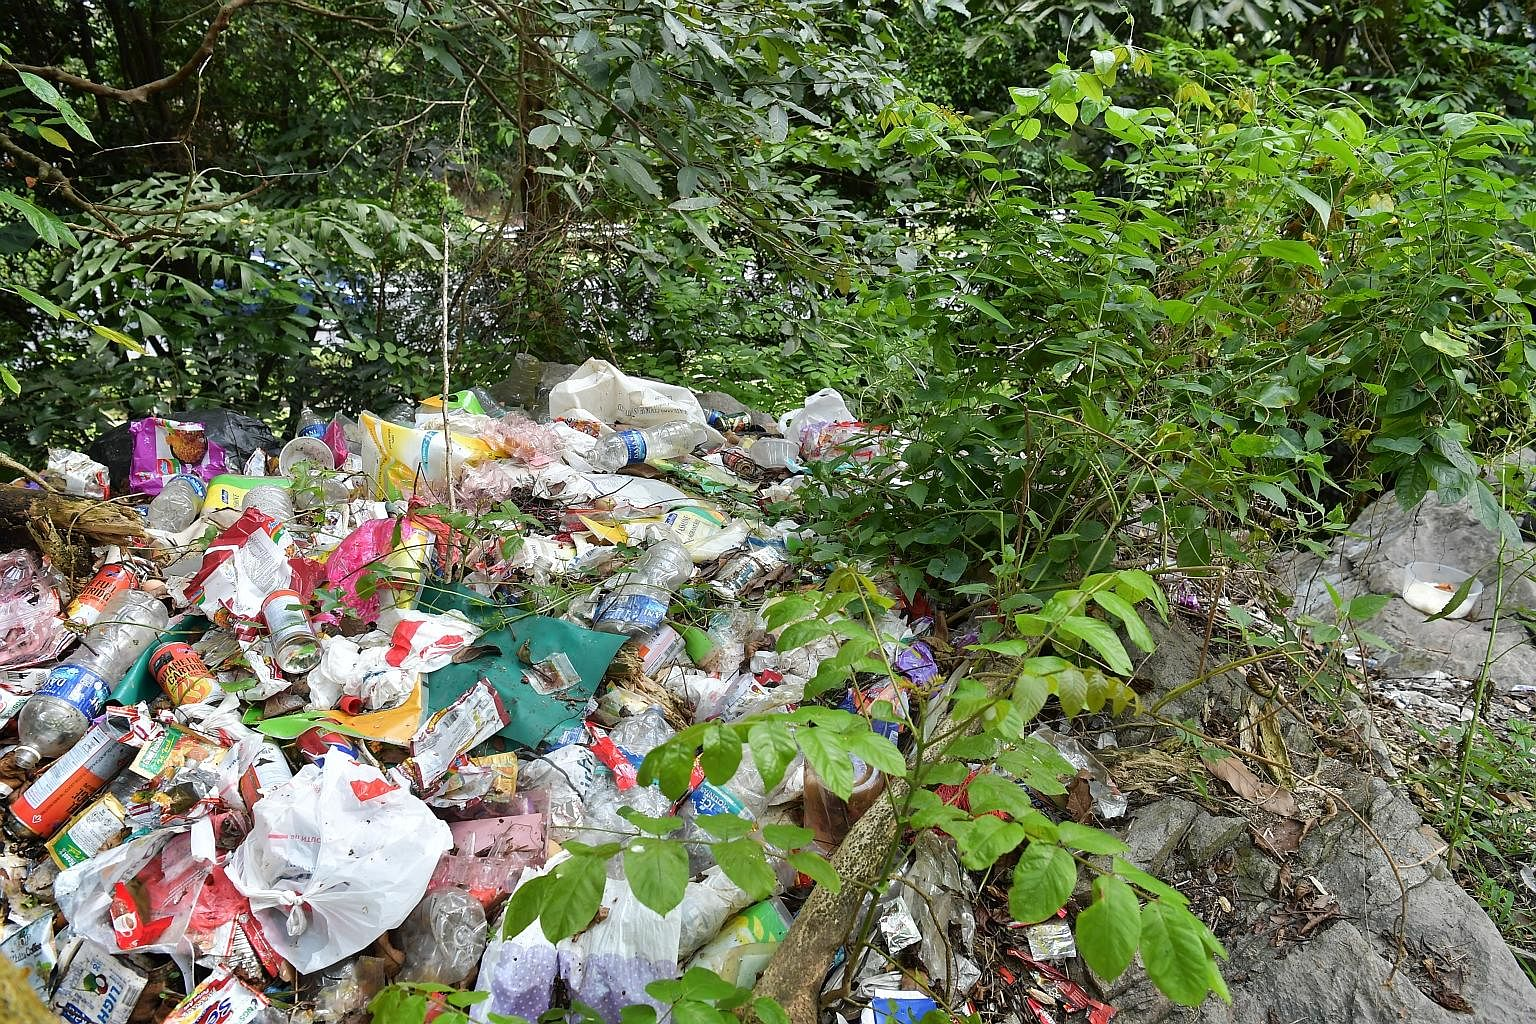 The men from the forest congregate in the evenings at the Petir Road and Bangkit Road HDB estates and receive big plastic bags of items. The contents are redistributed and packed into smaller plastic bags. The men disperse while another cyc